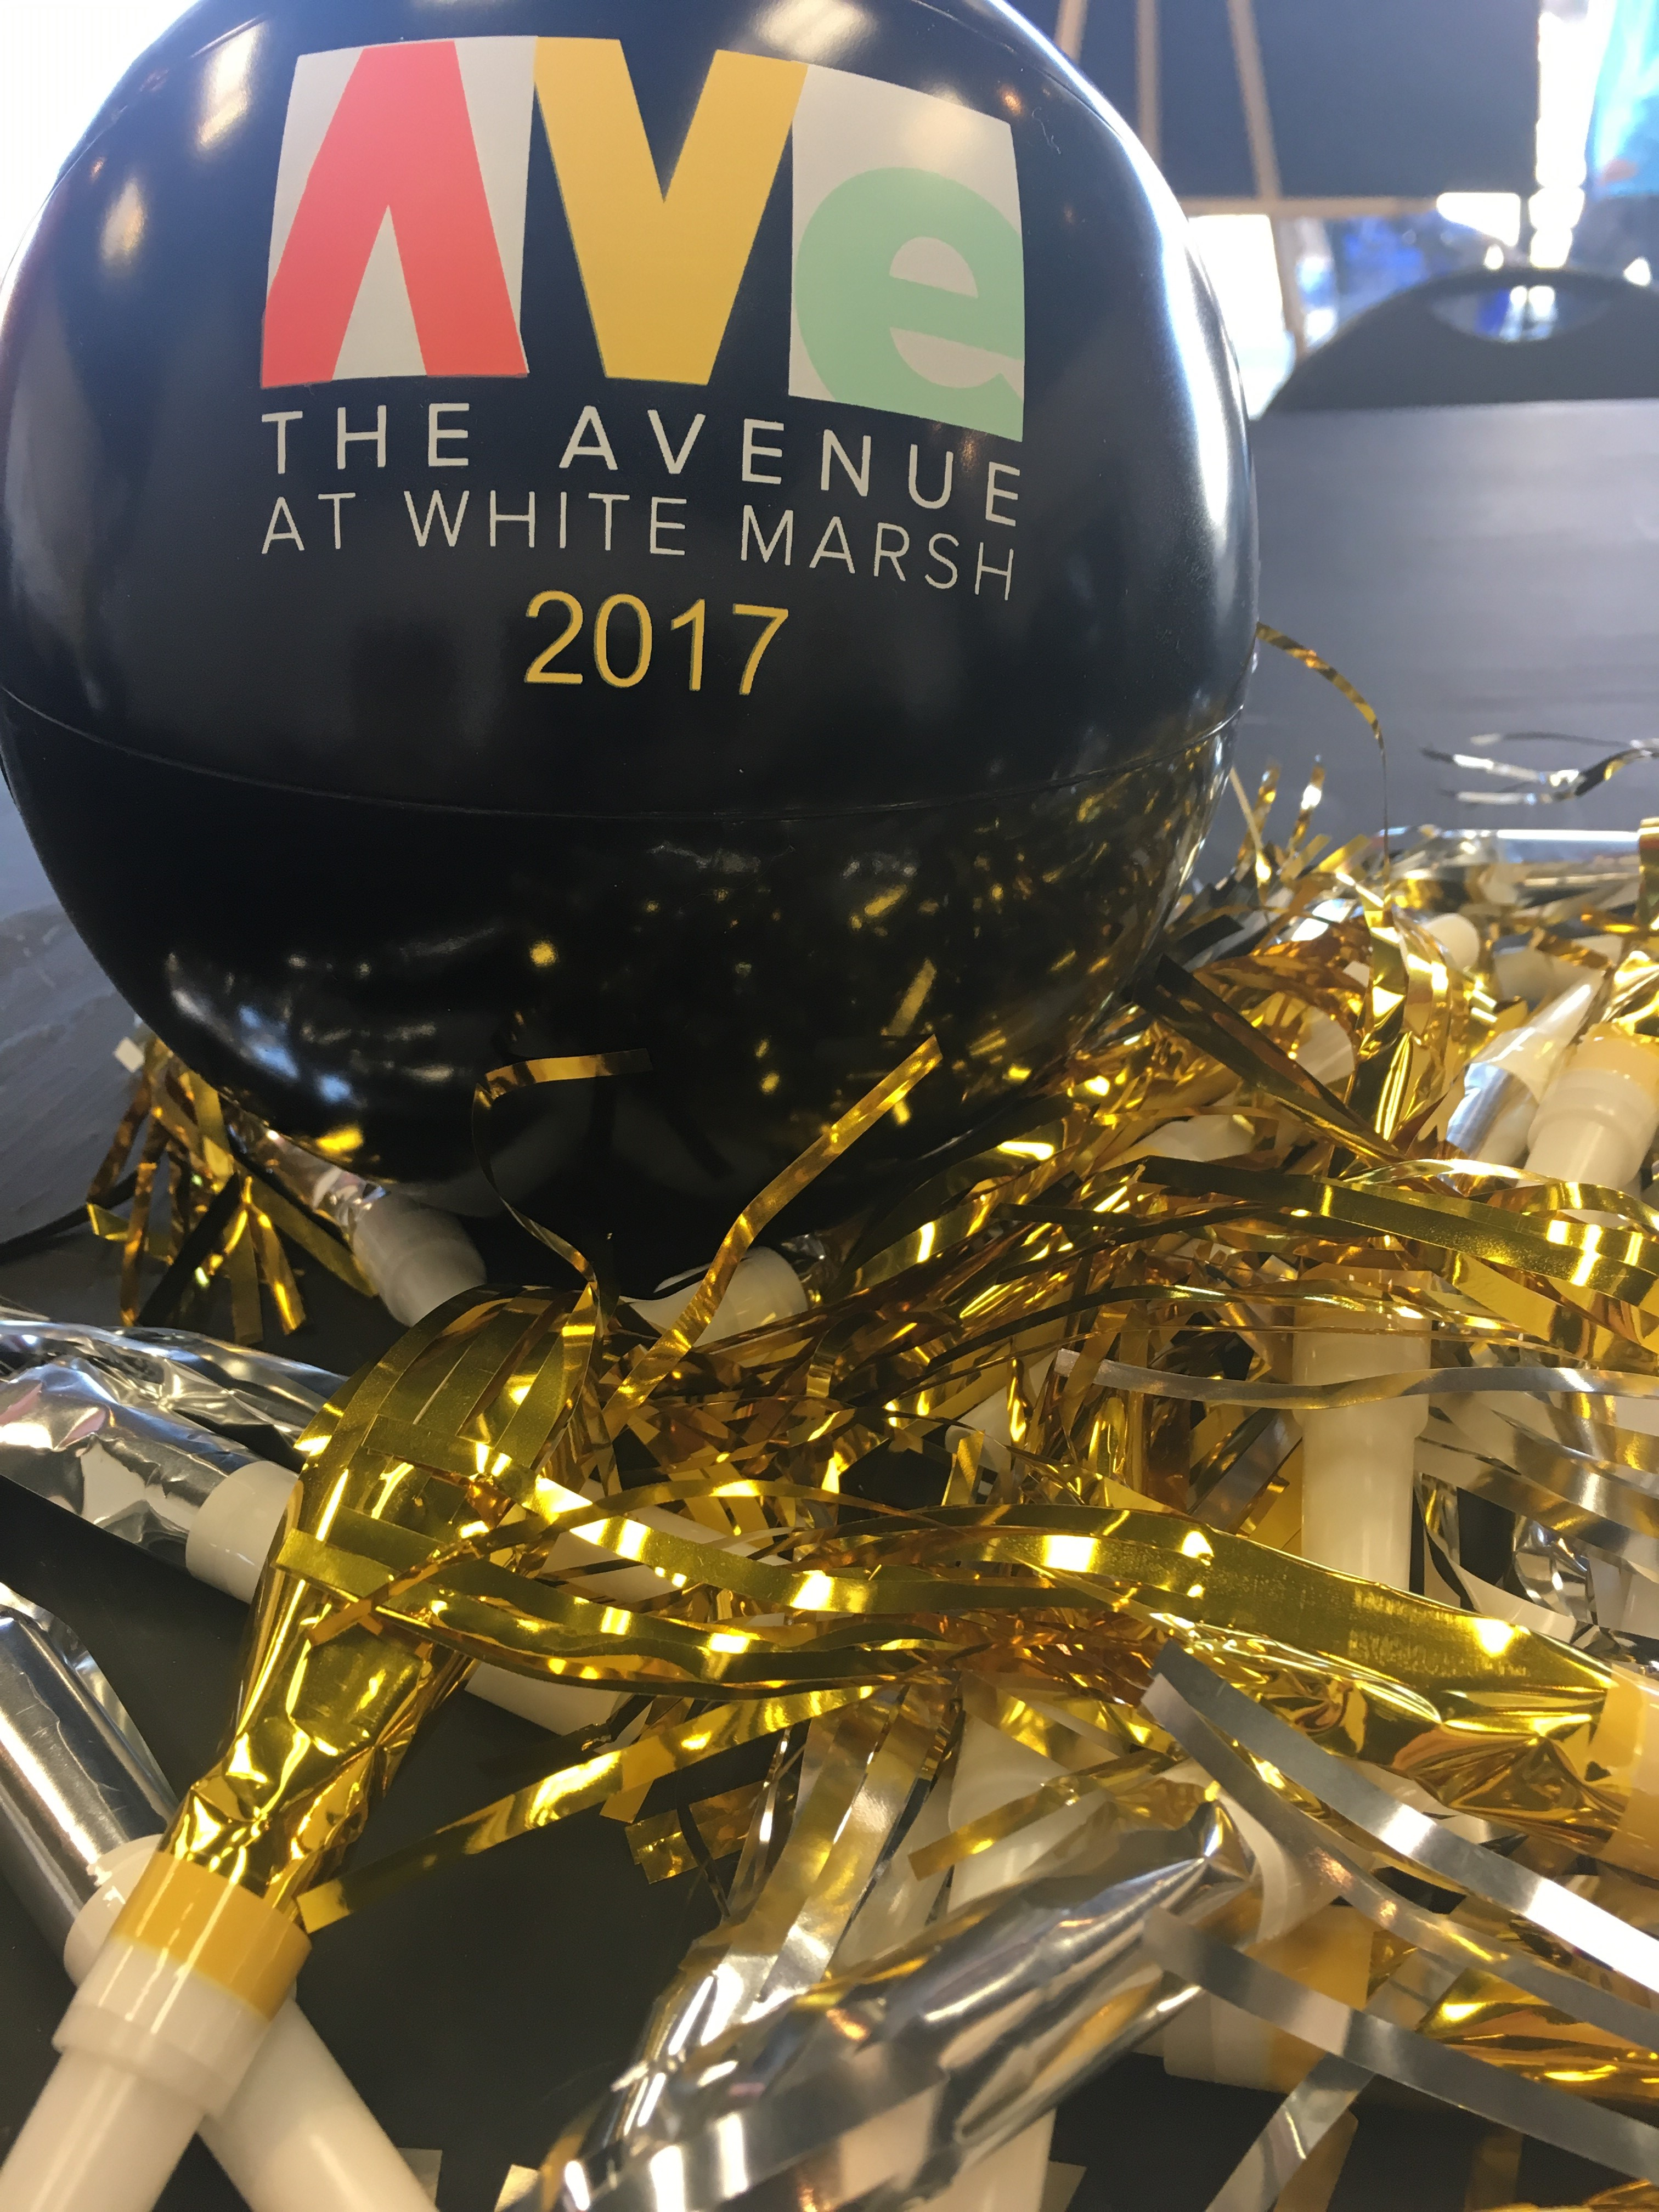 the avenue at white marsh 2017